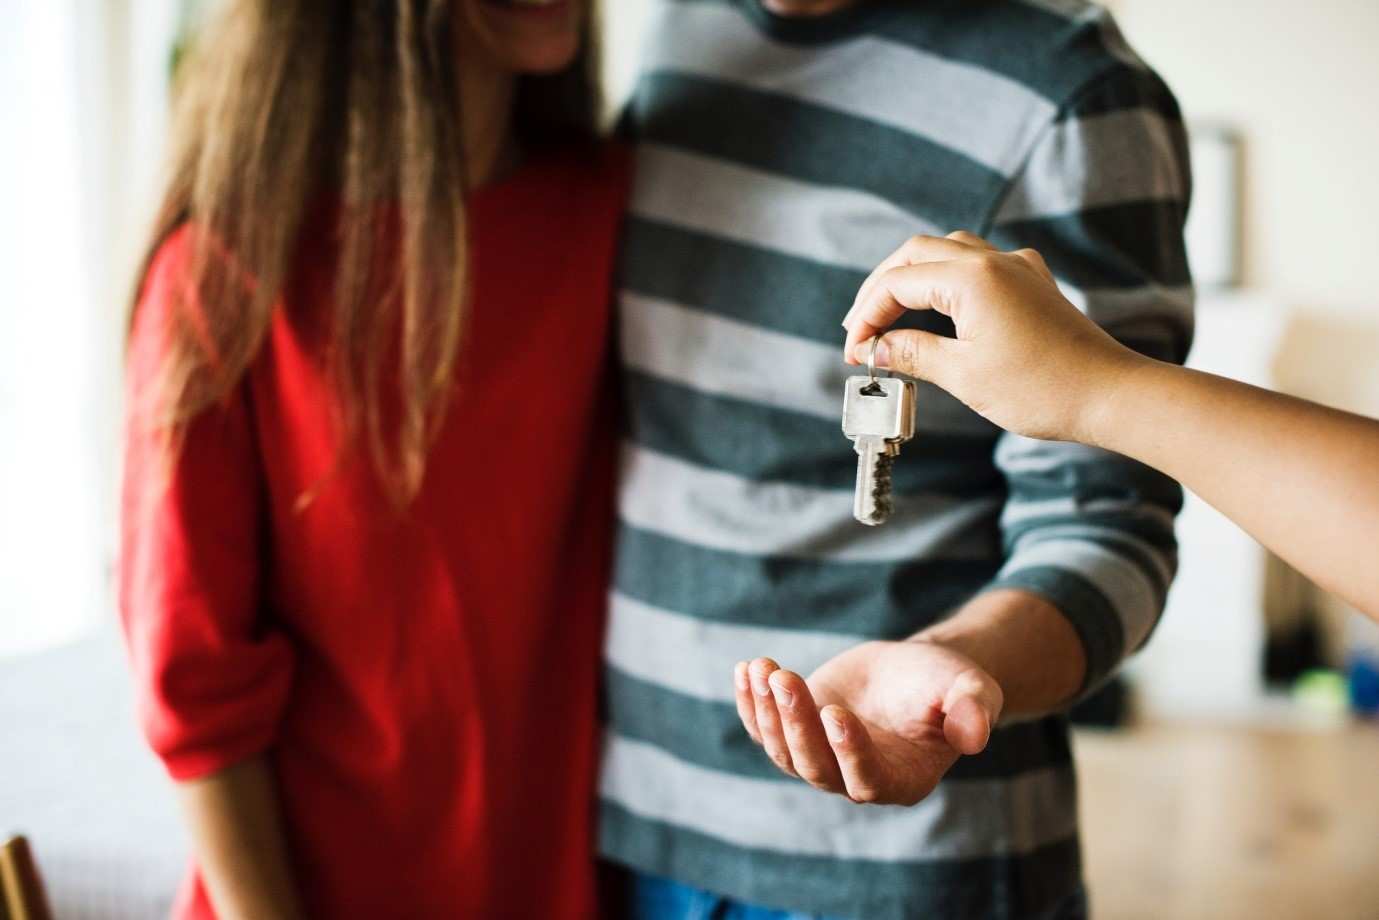 A couple is taking a key